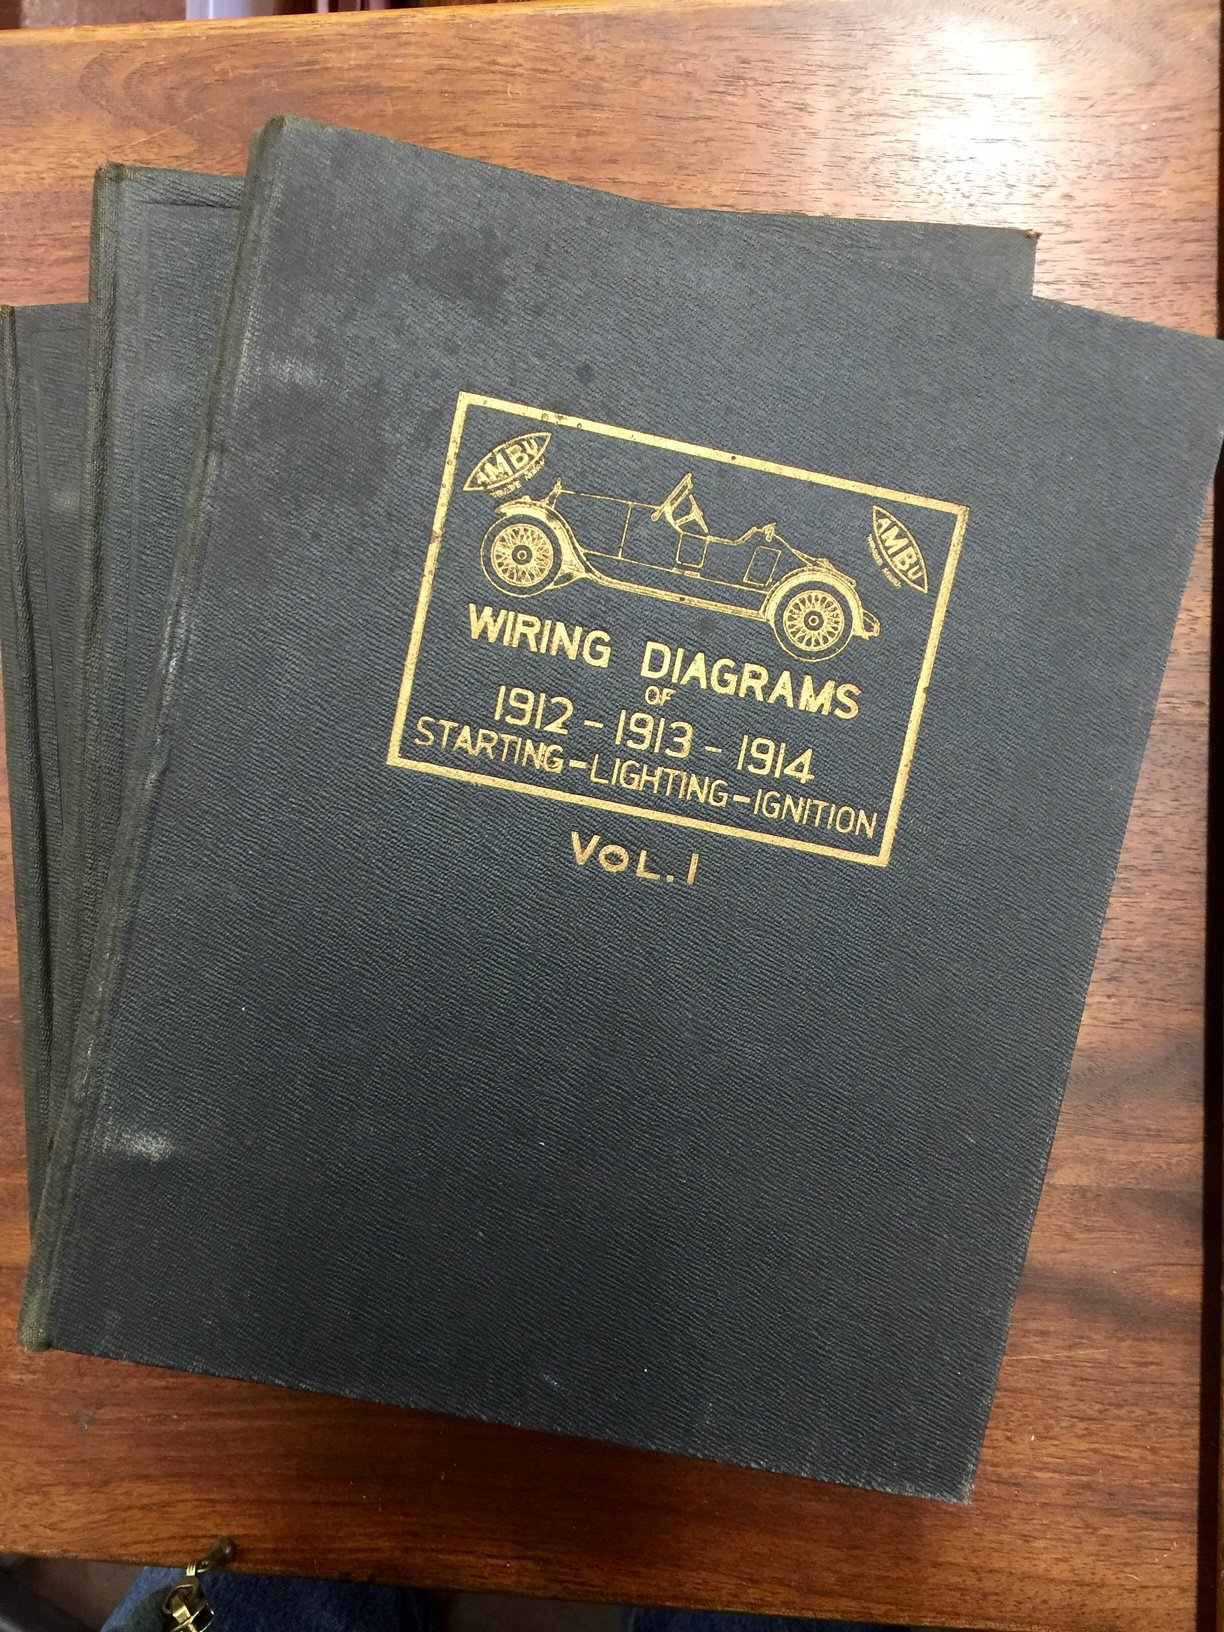 Automotive Wiring Manual Containing Guaranteed Correct Circuit Diagrams Author At Page Covering All Motor Cars From 1912 To 1919 Inclusive Harry Lorin Wells